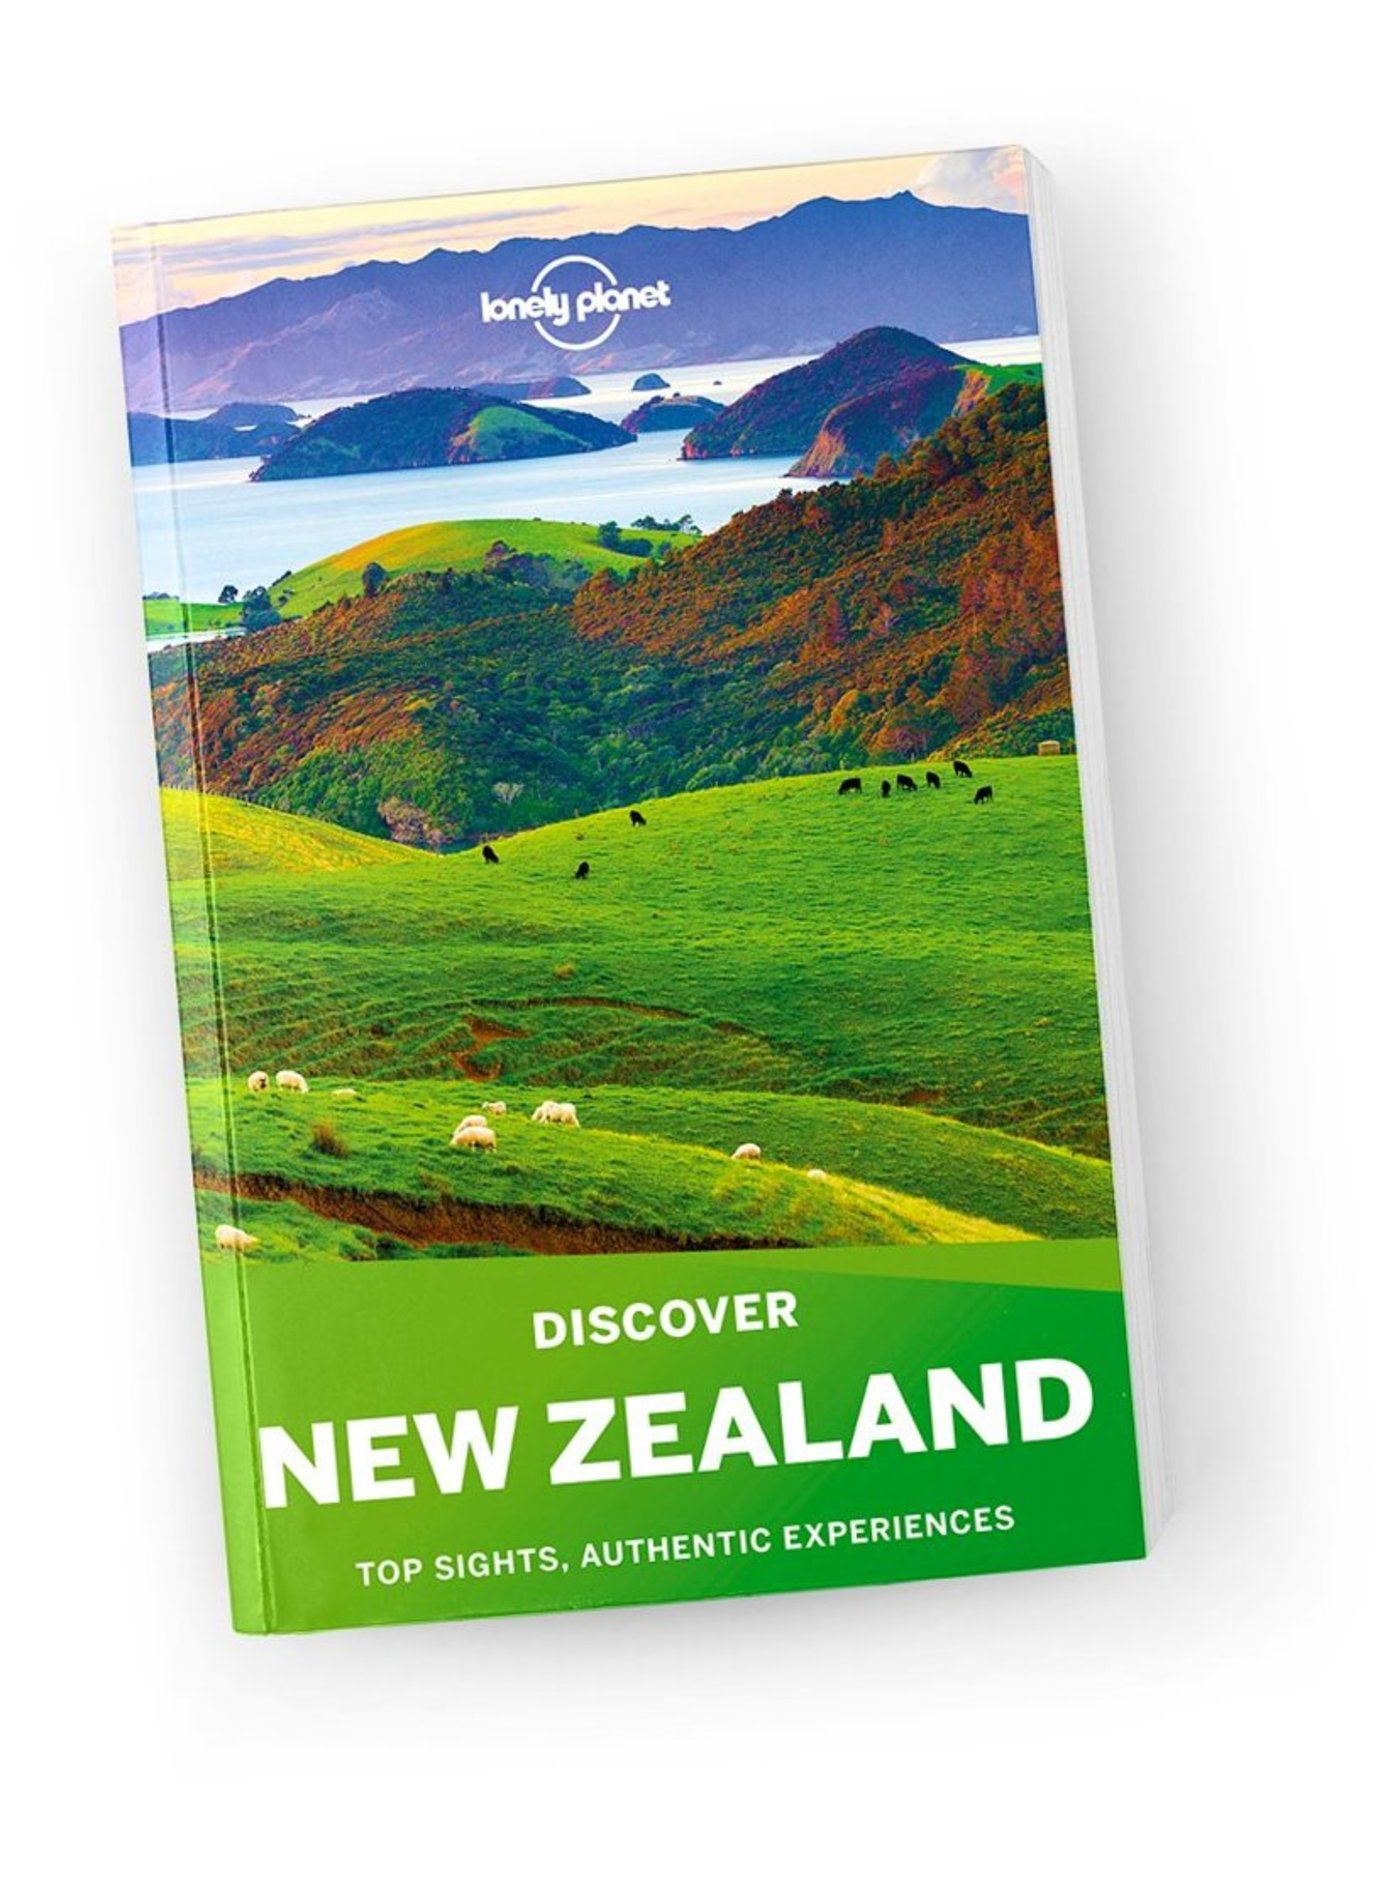 Discover New Zealand travel guide